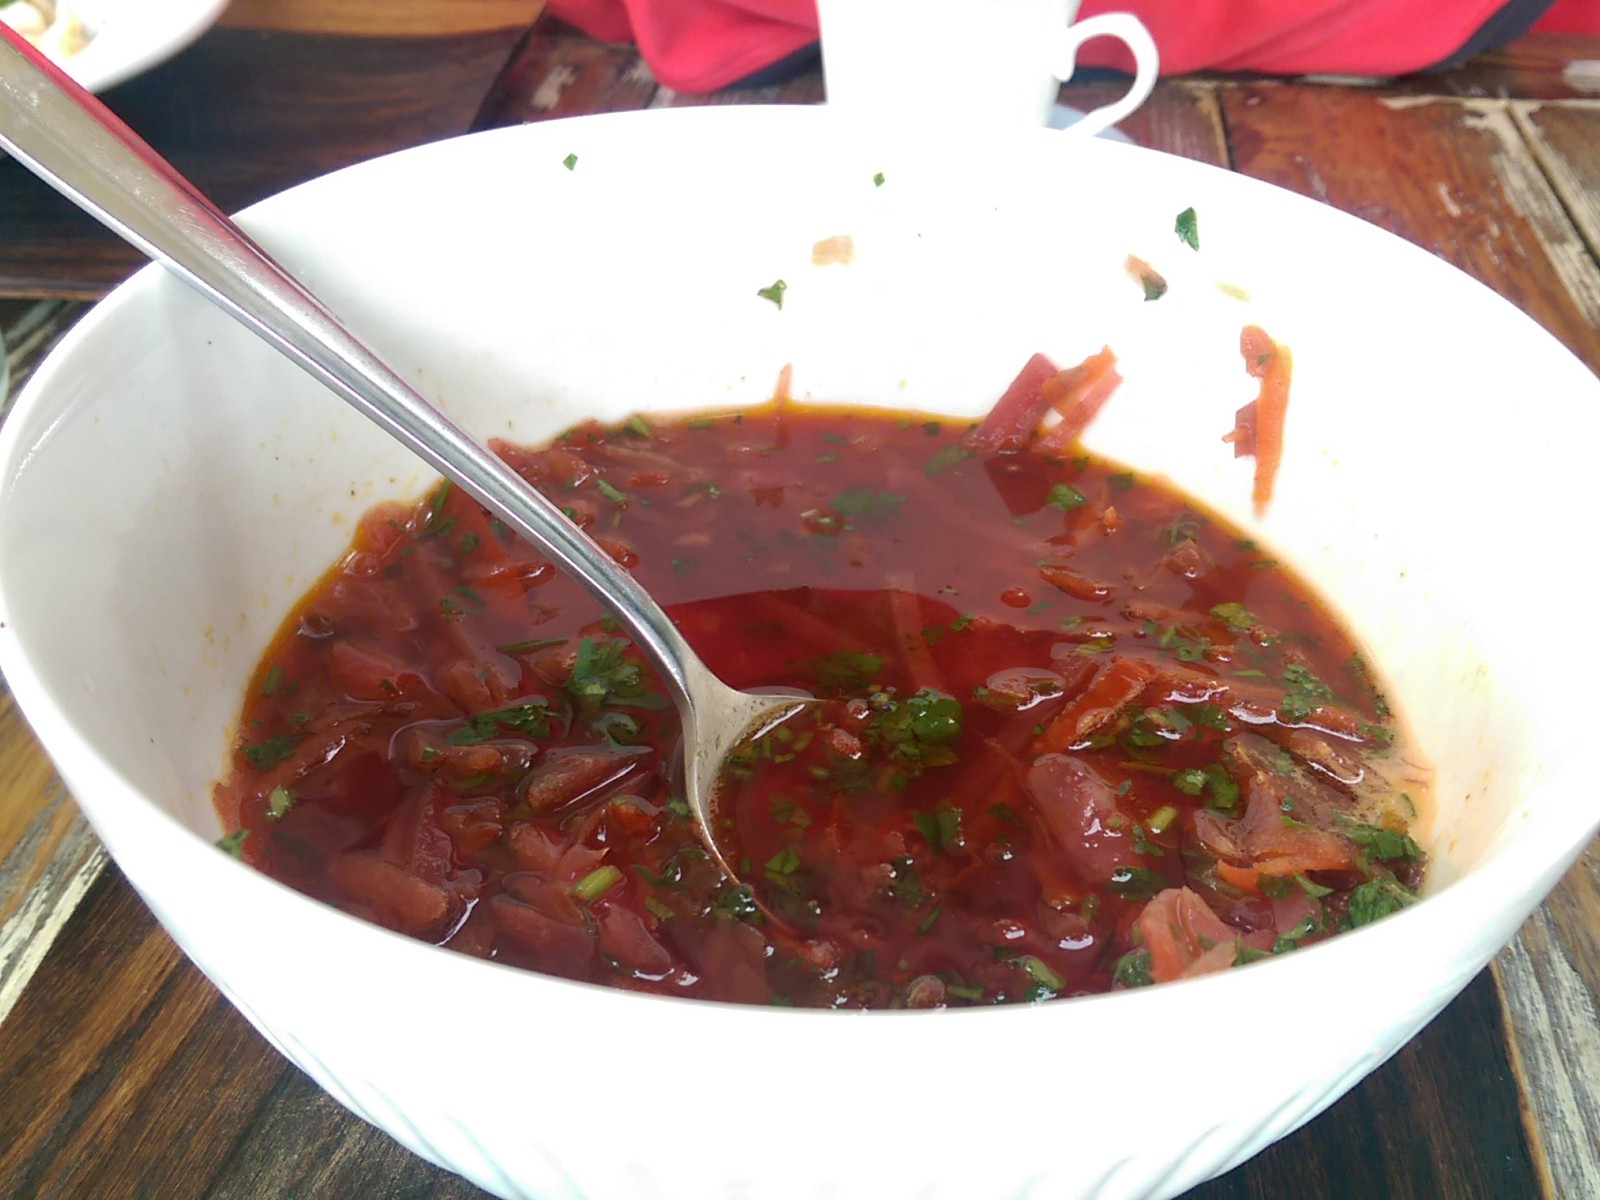 A white bowl of reddish pink soup with a spoon